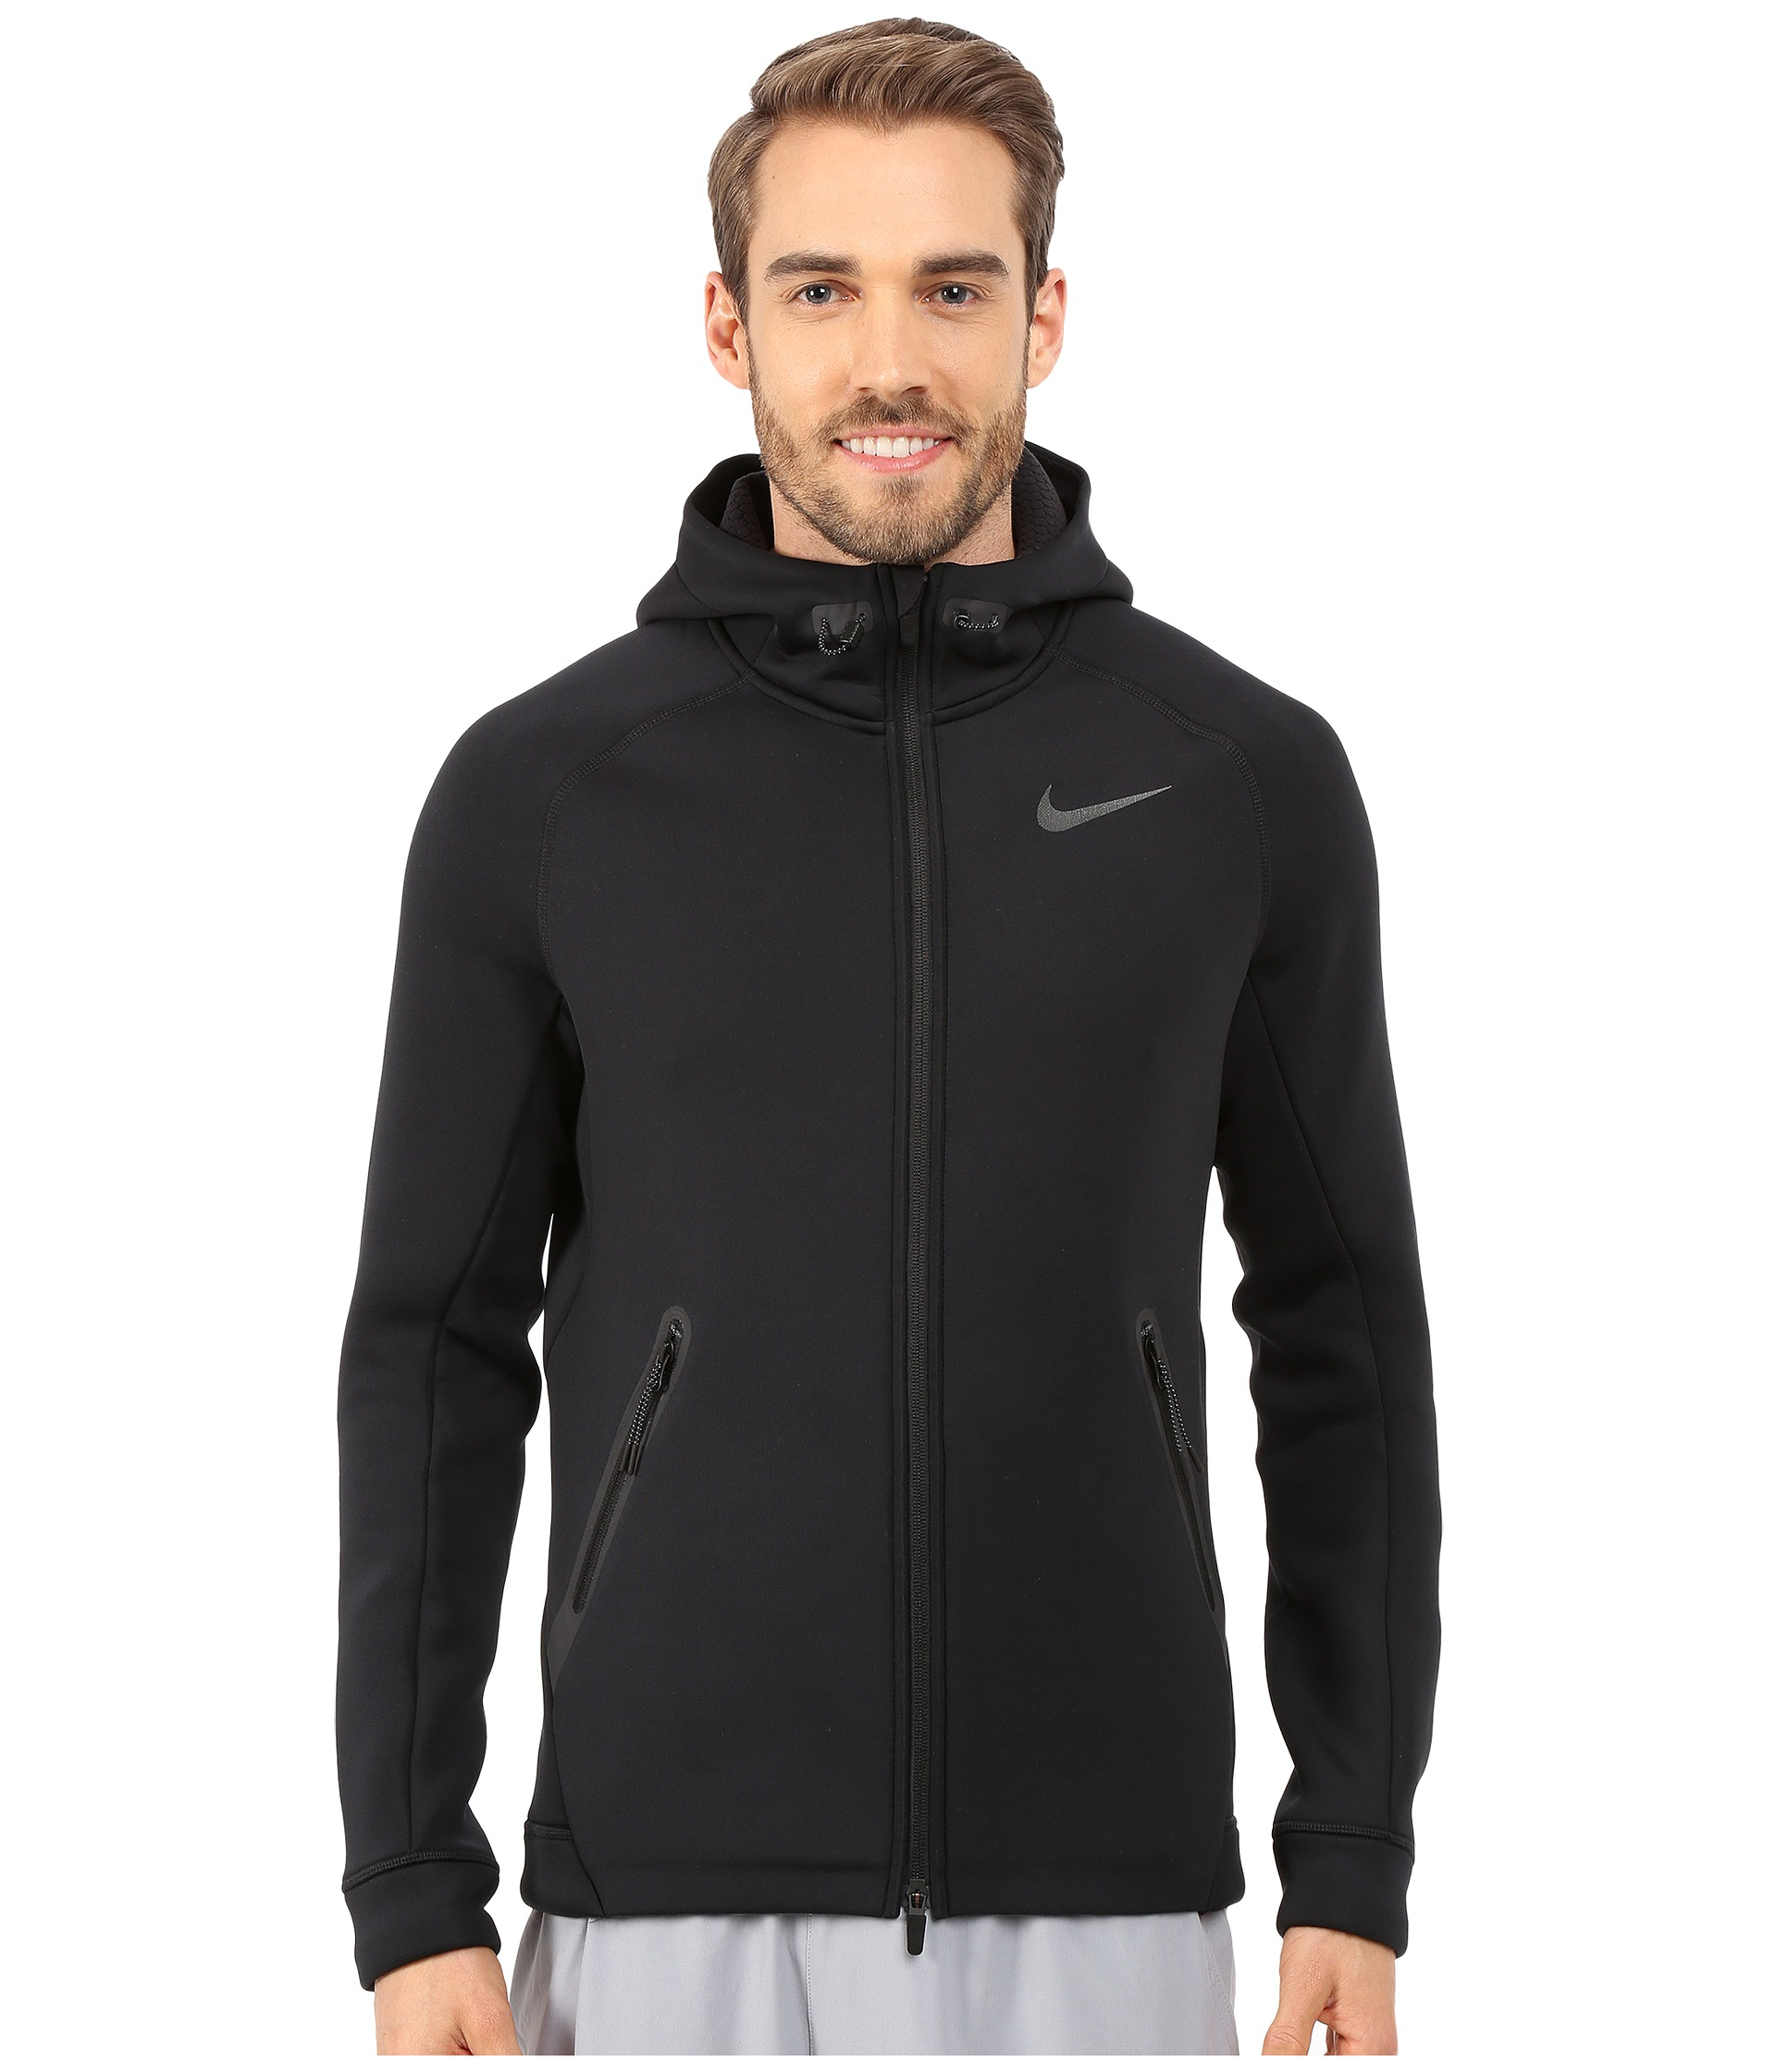 Nike Therma Sphere Max Training Jacket In Black For Men Lyst